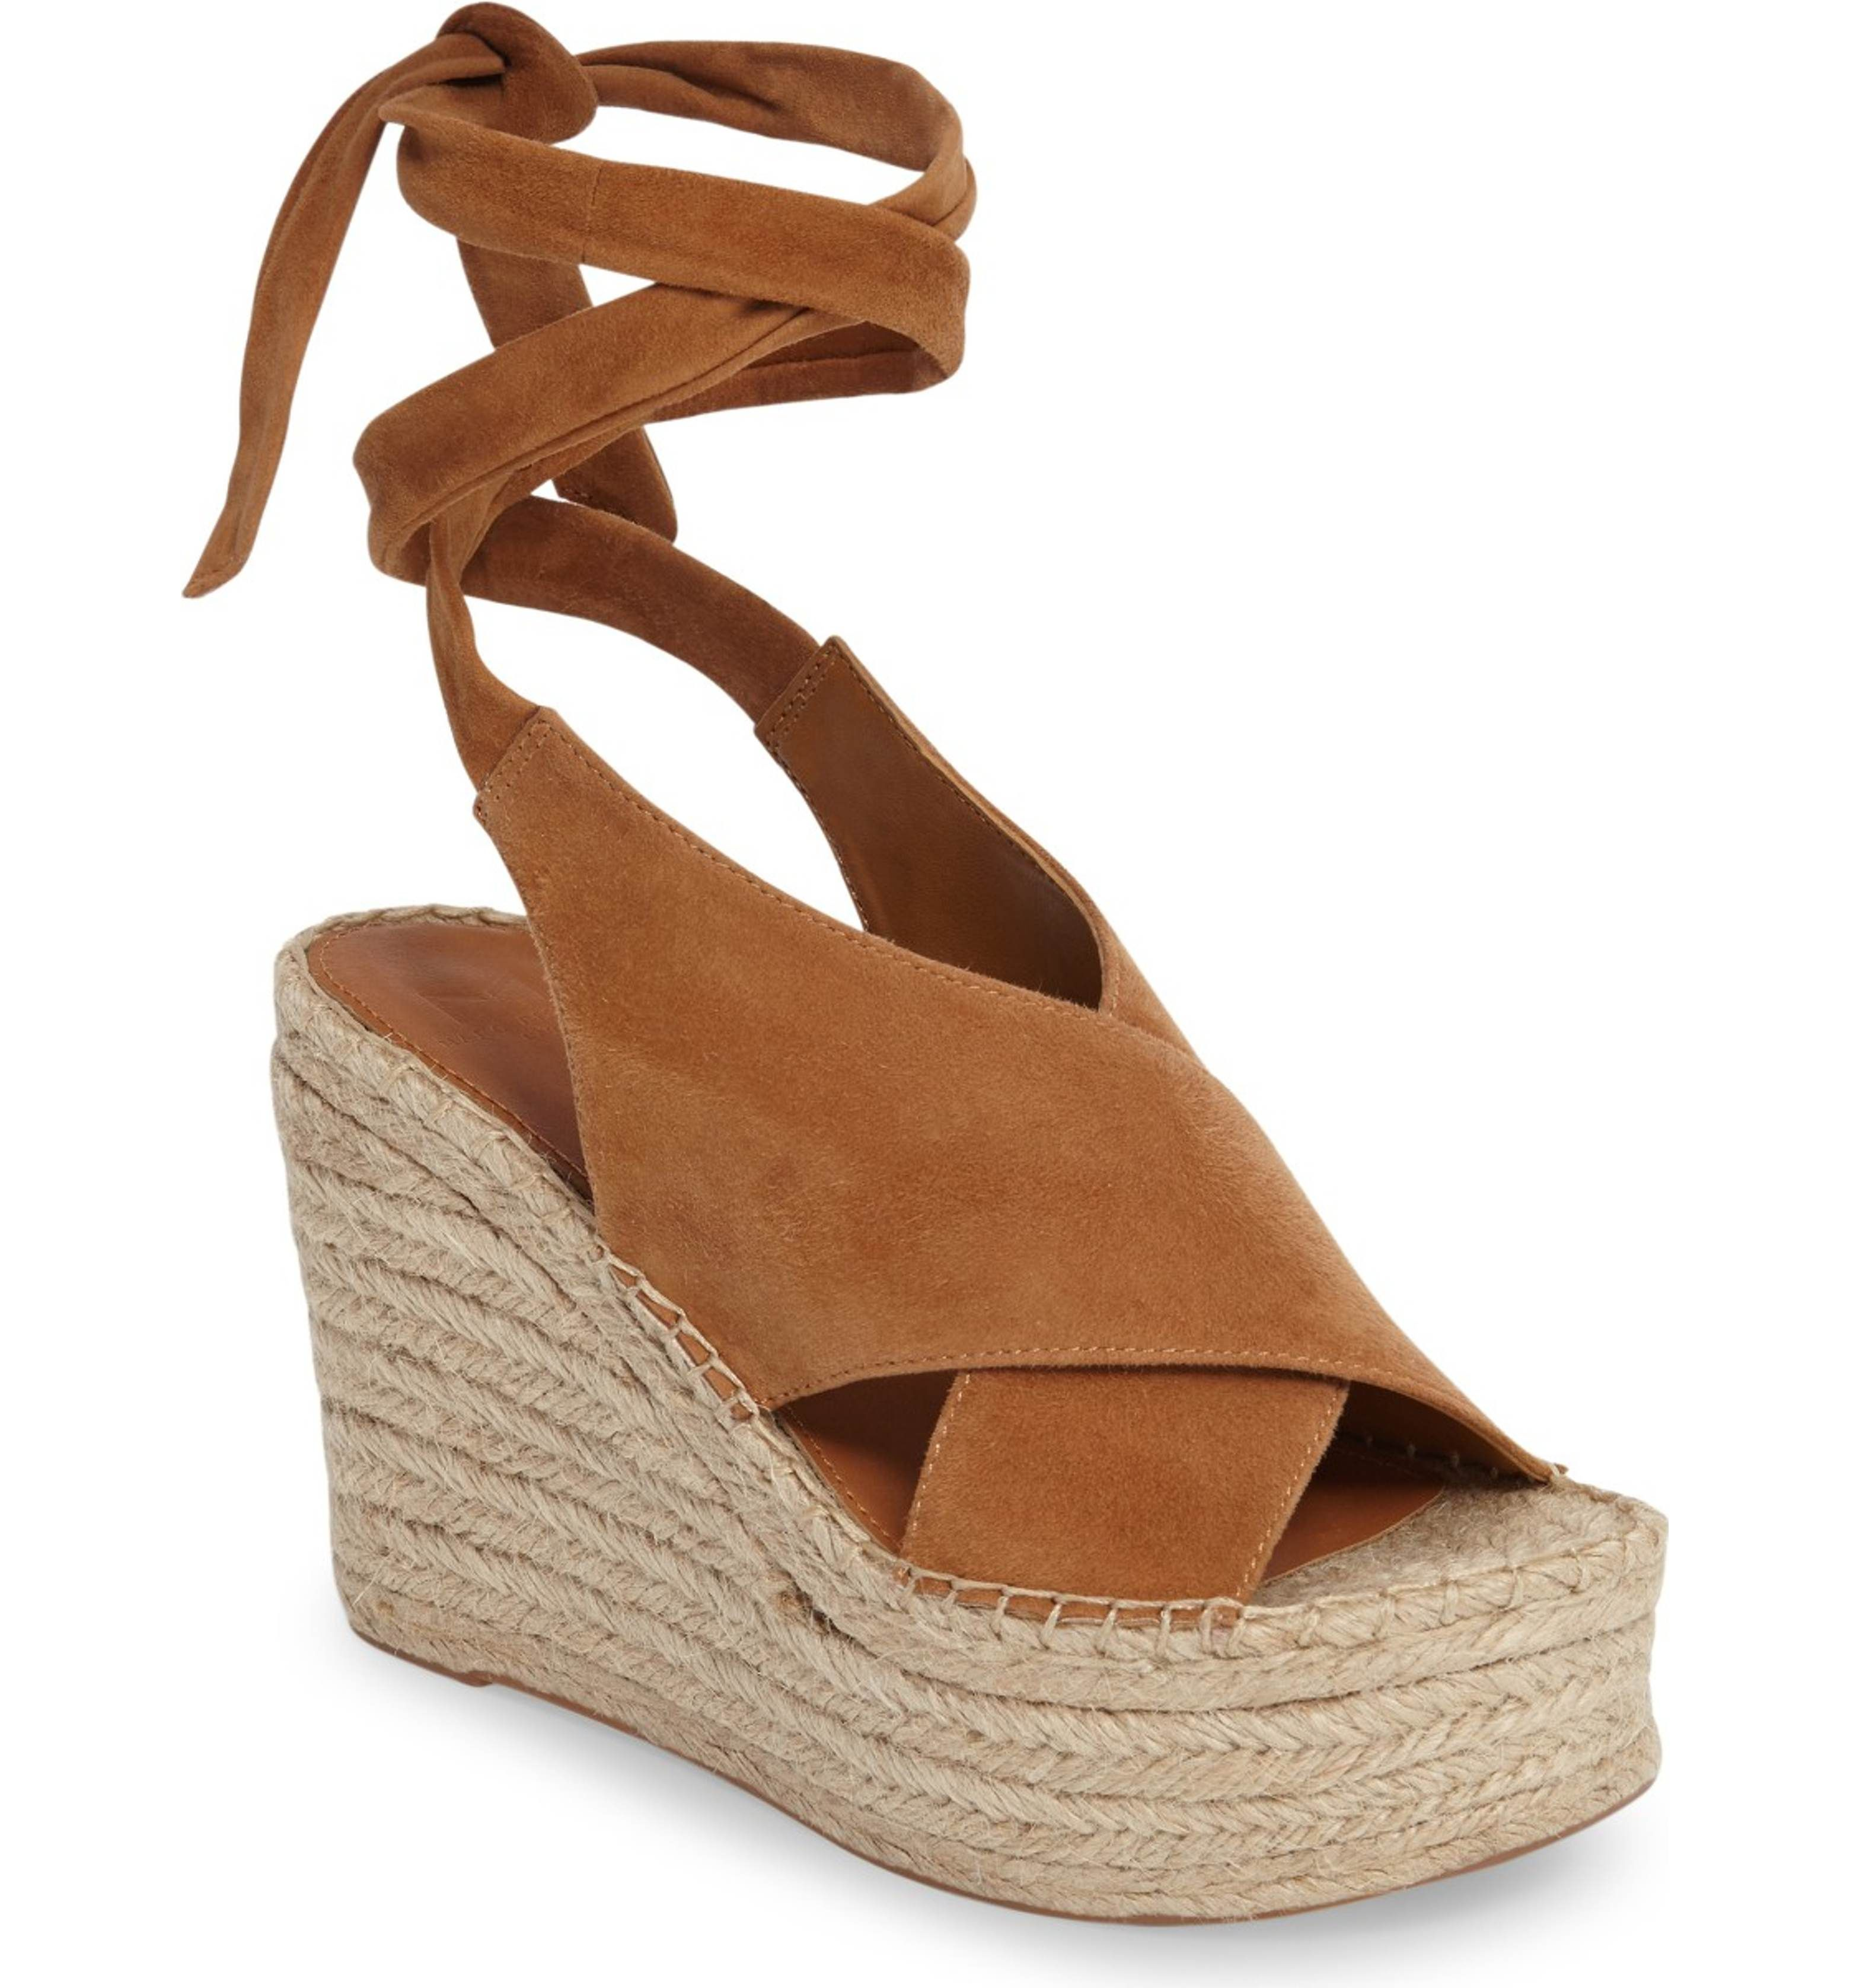 cheap sale official clearance lowest price Priorities Wedge Sandal sBvfc